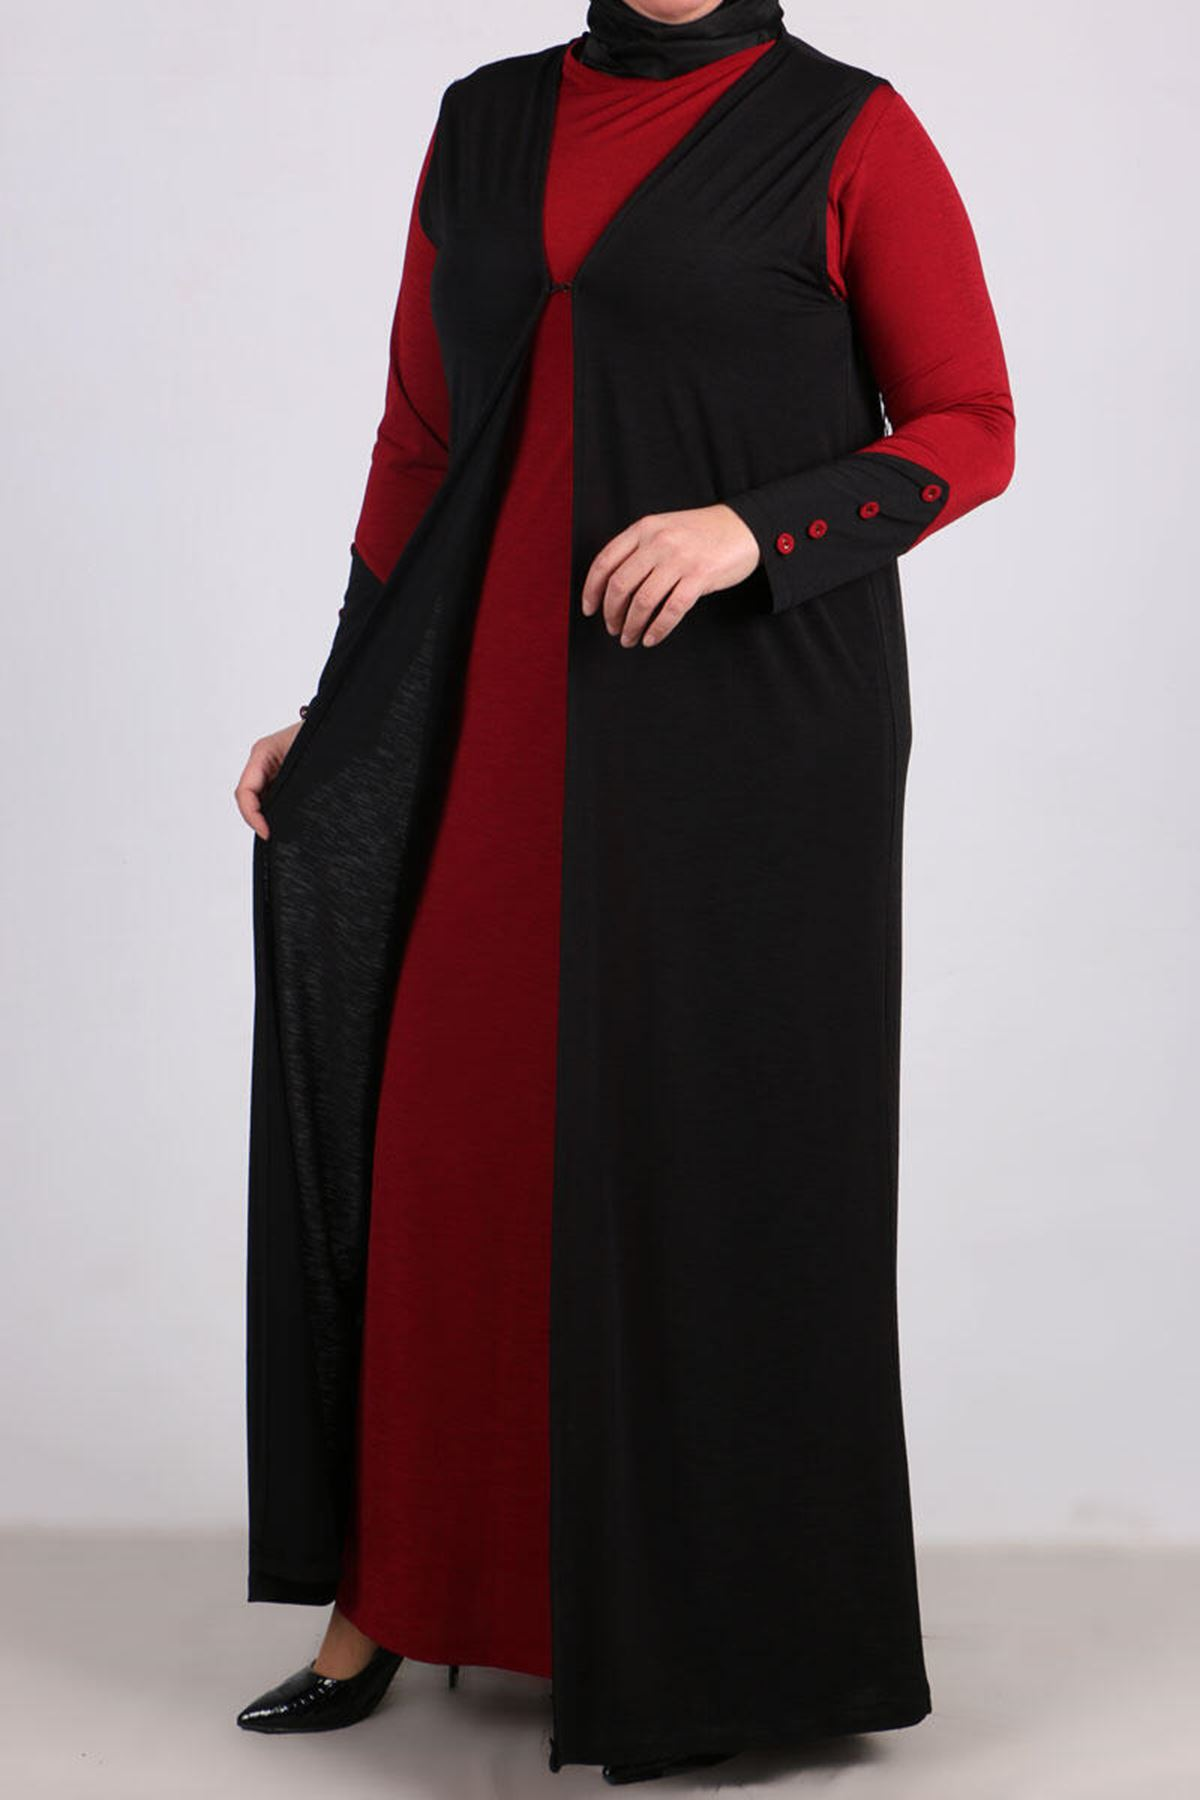 7212 Plus Size Two Piece Set with Dress and Vest - Claret Red